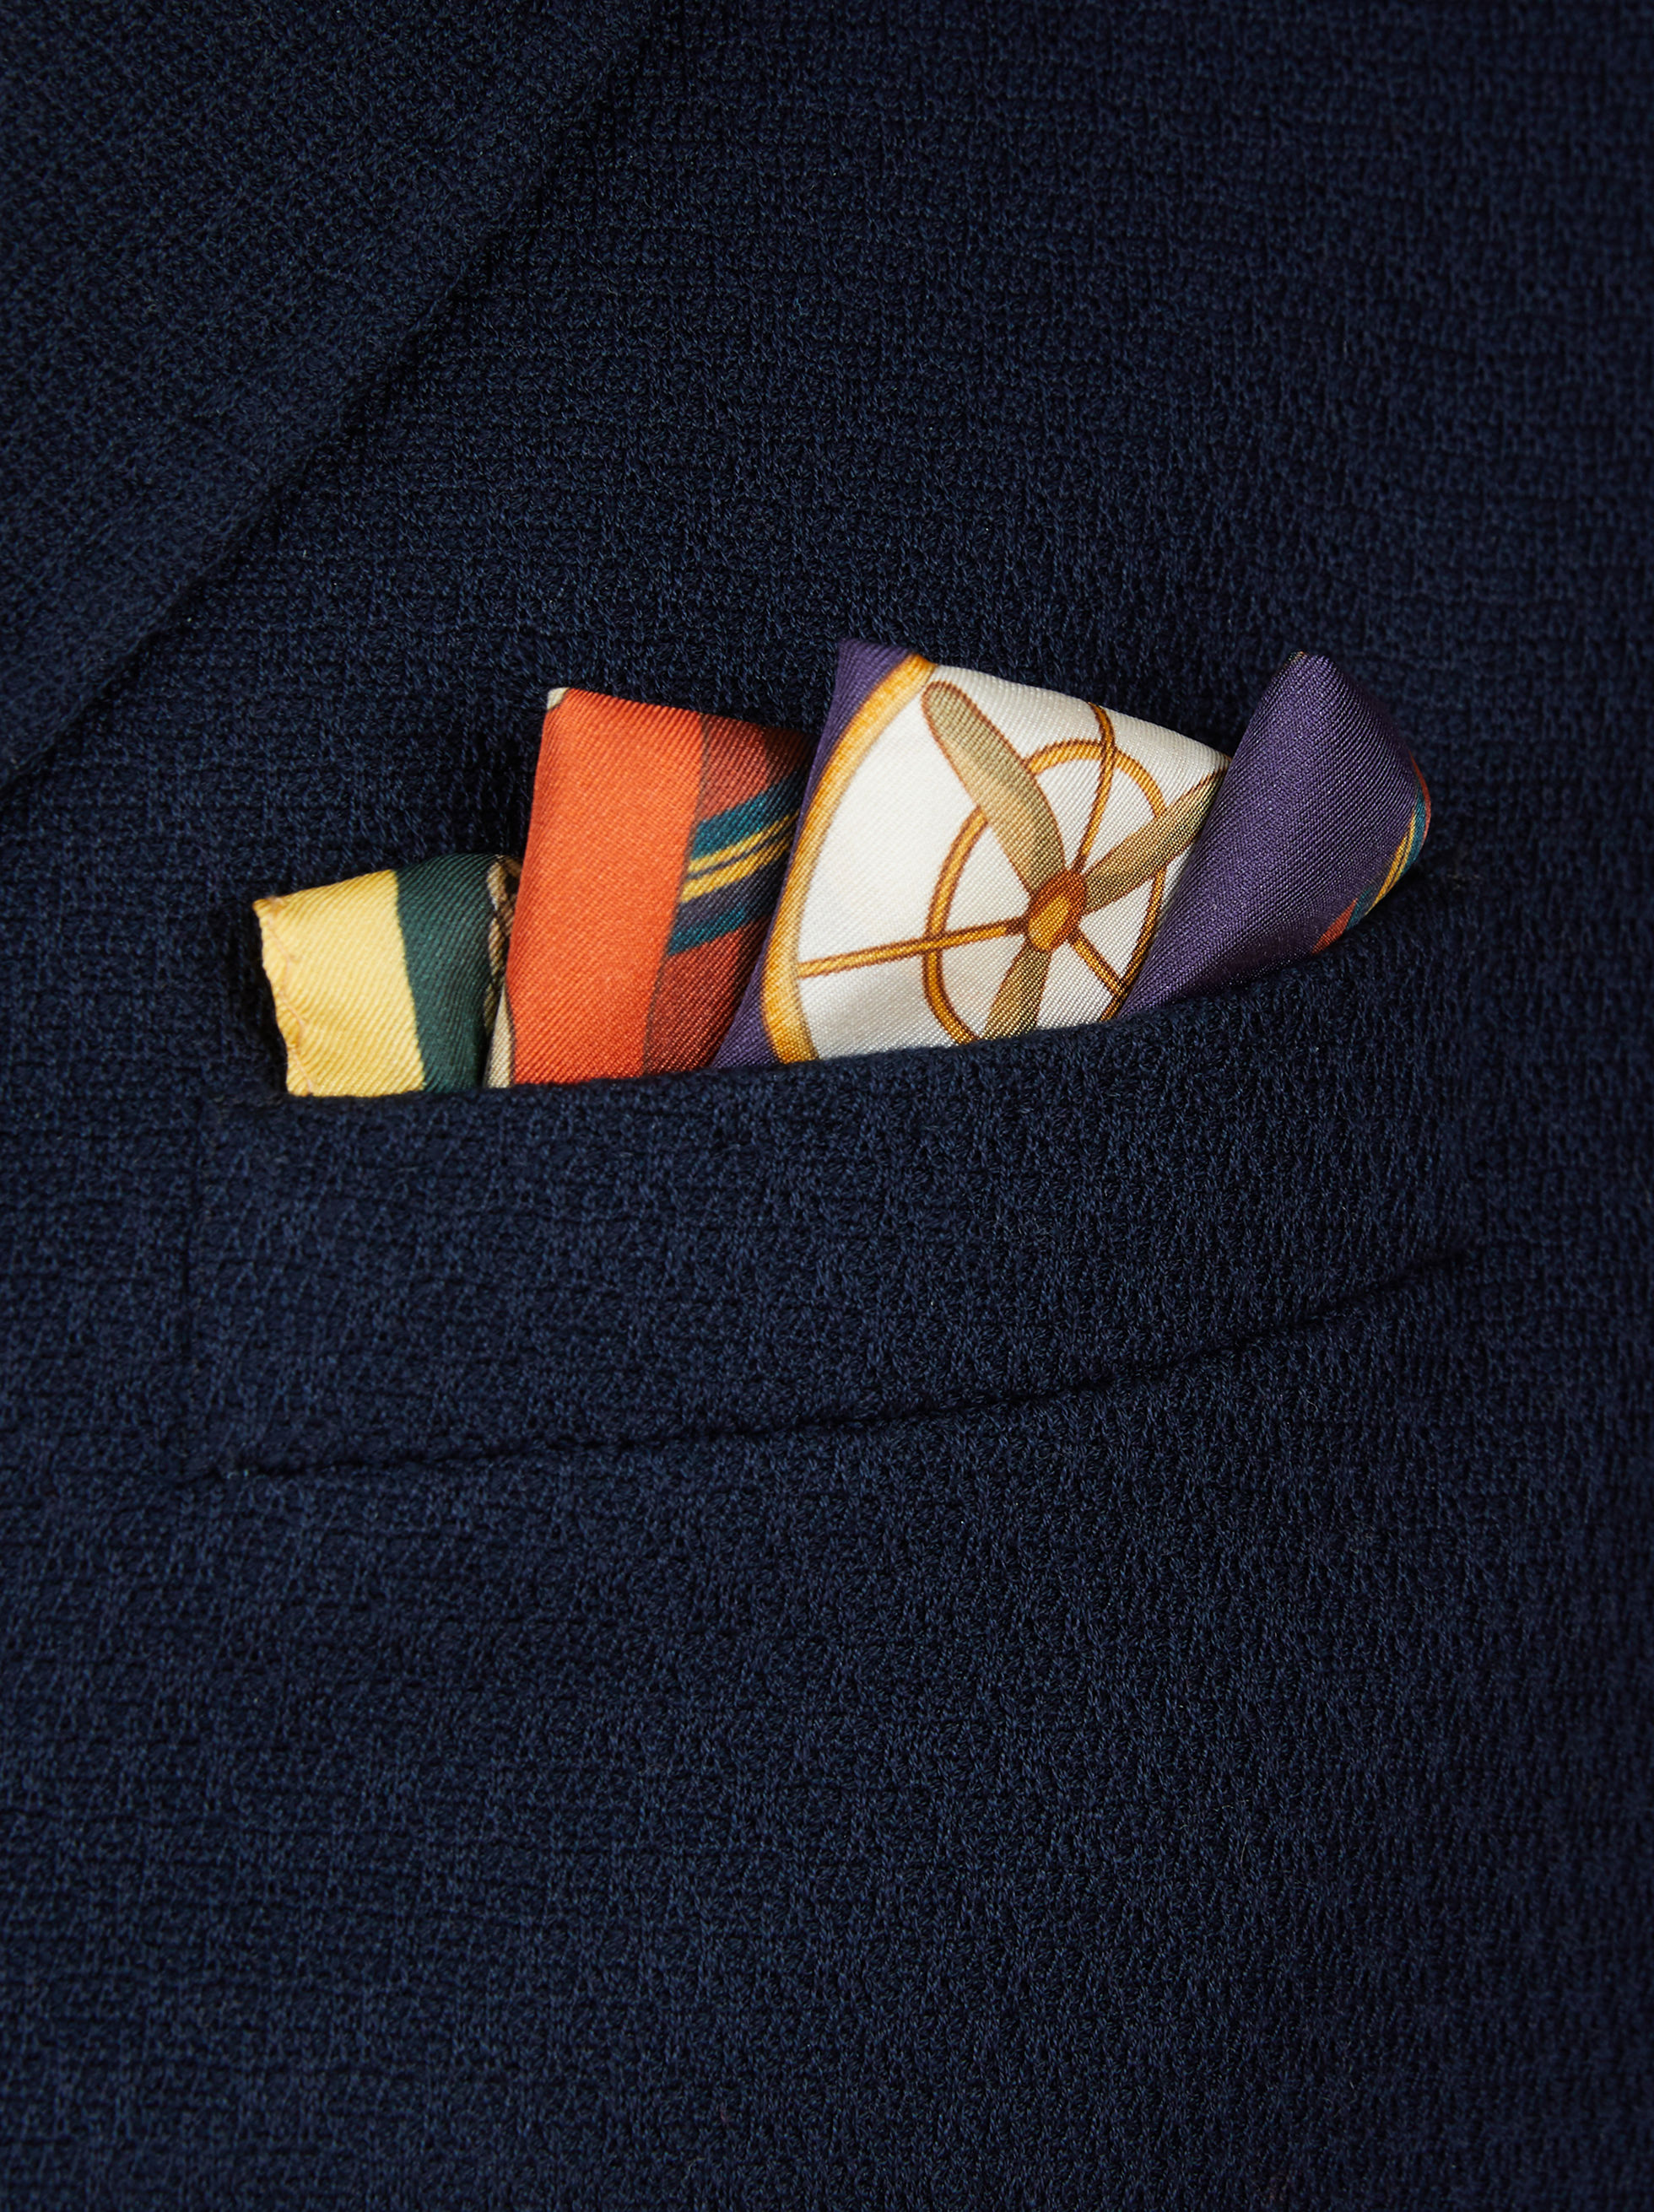 POCKET SQUARE WITH REGIMENTAL PRINT